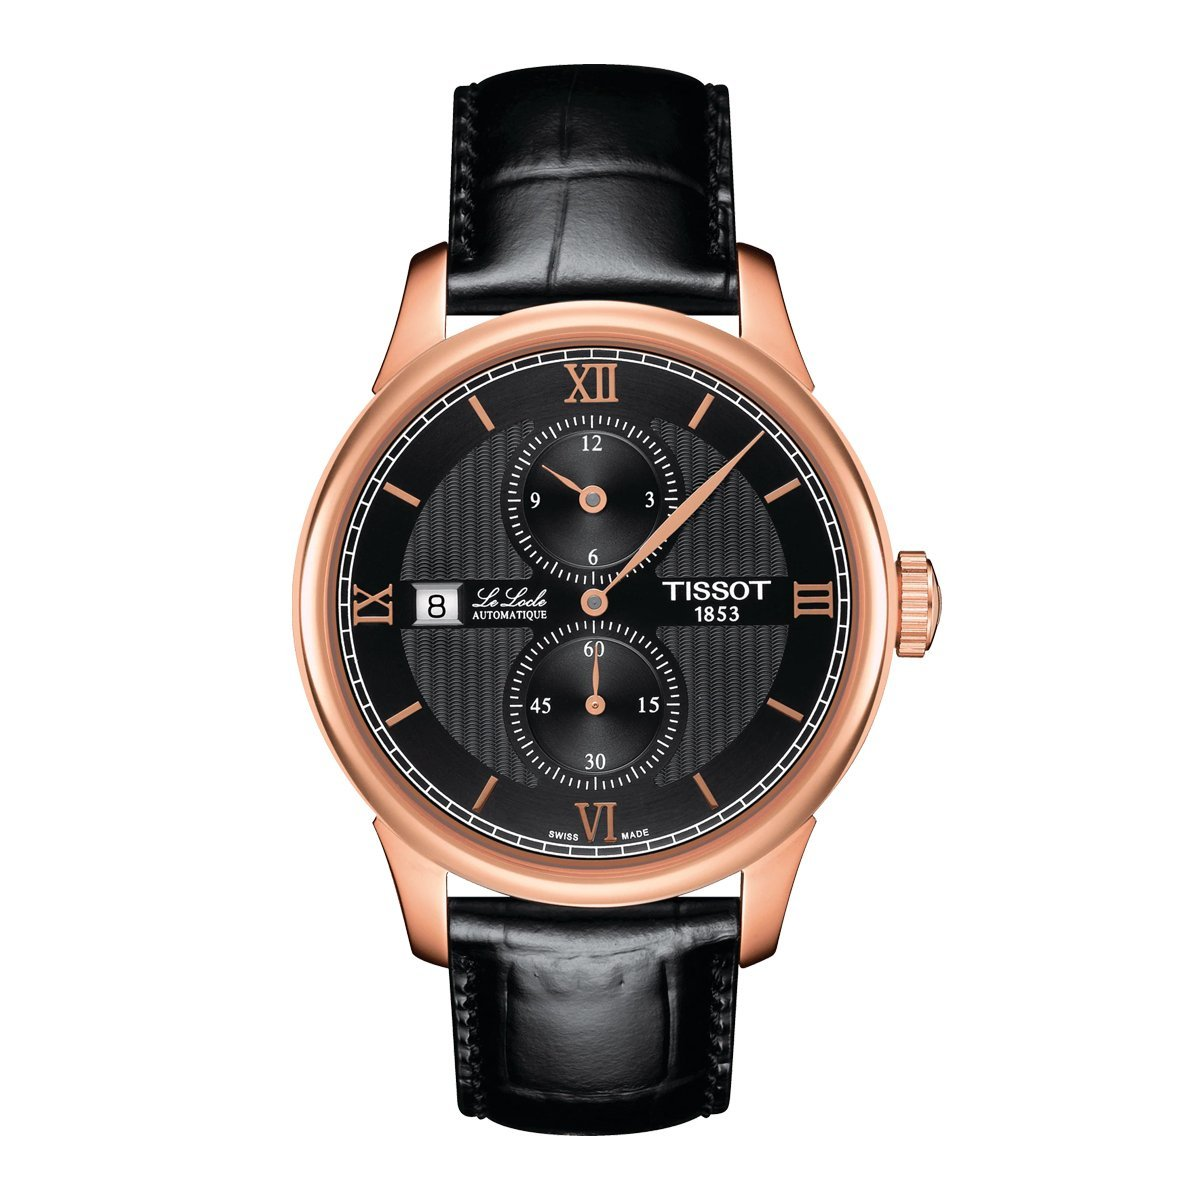 Tissot T-Classic Le Locle Regulator Rose Gold - Watches & Crystals